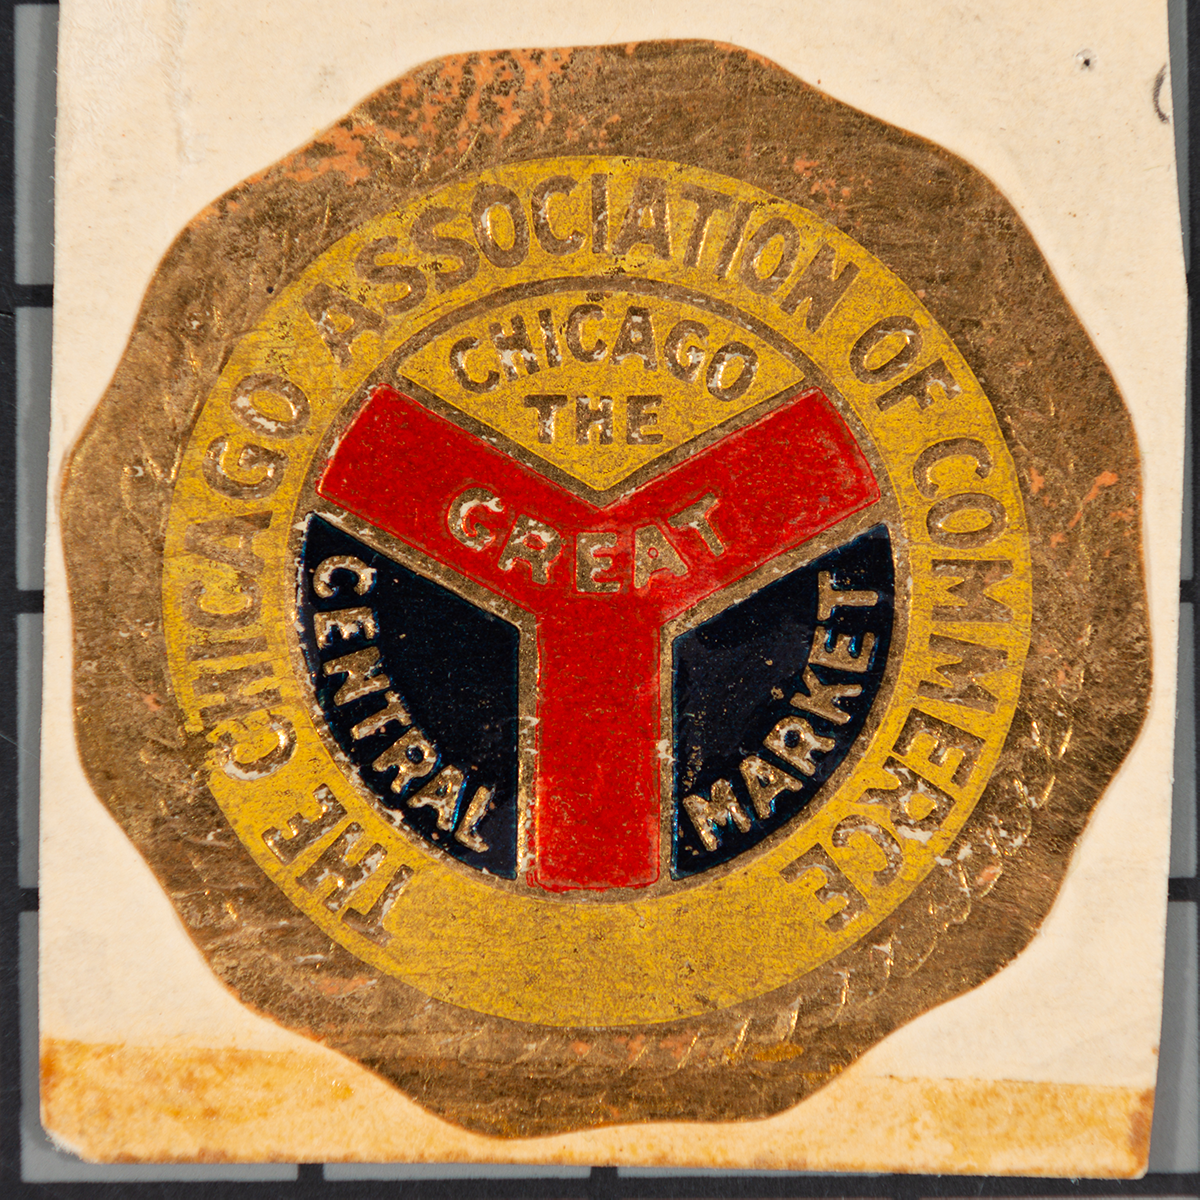 Original Municipal Device from the the Chicago Association of Commerce